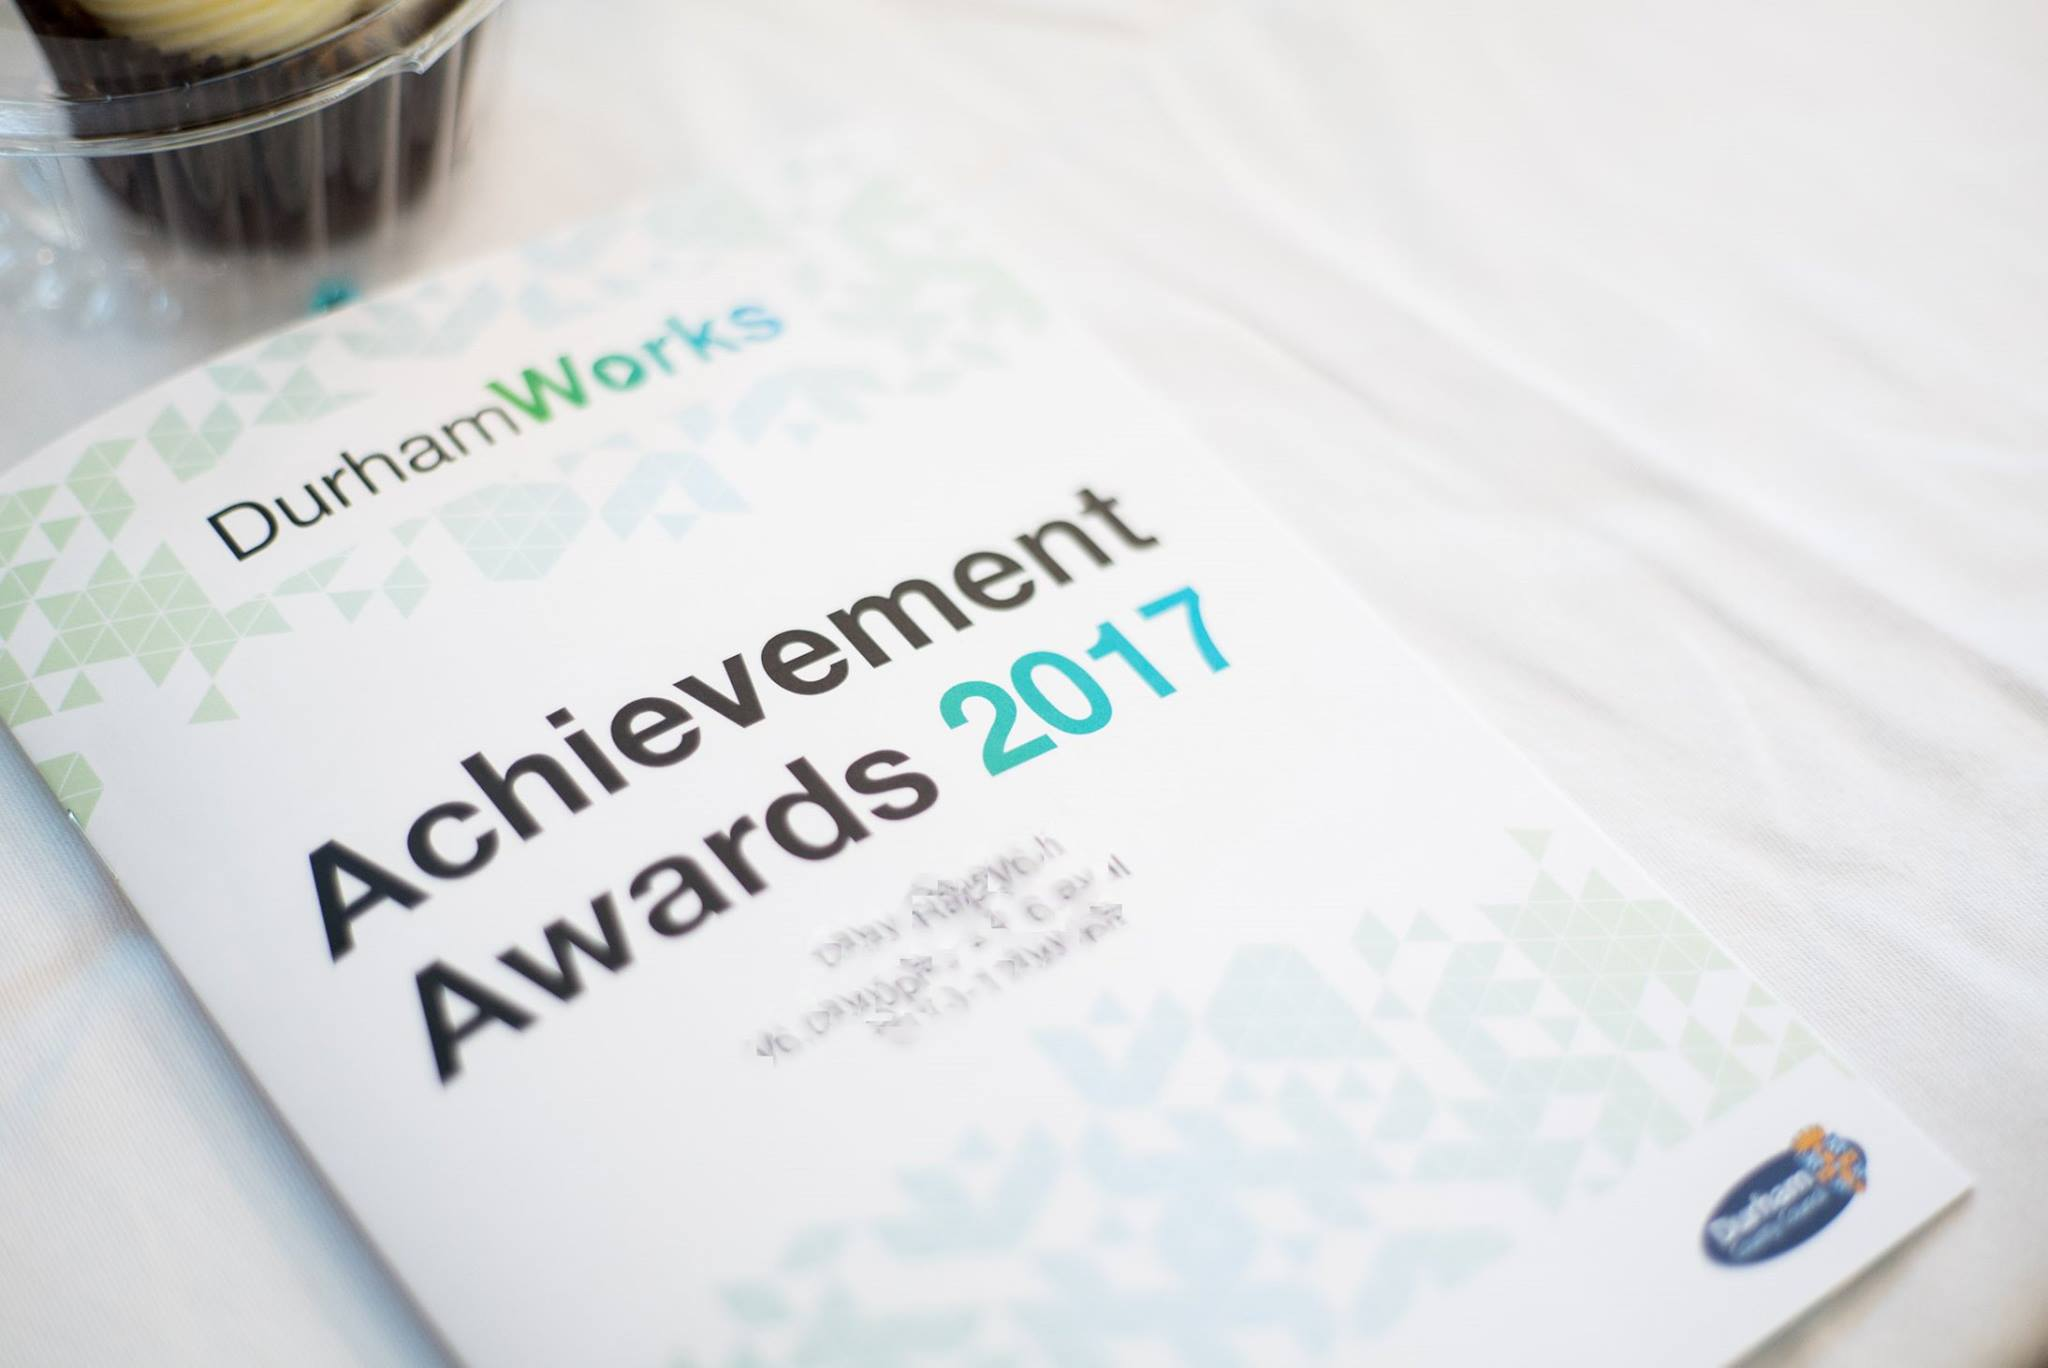 DurhamWorks Achievement awards